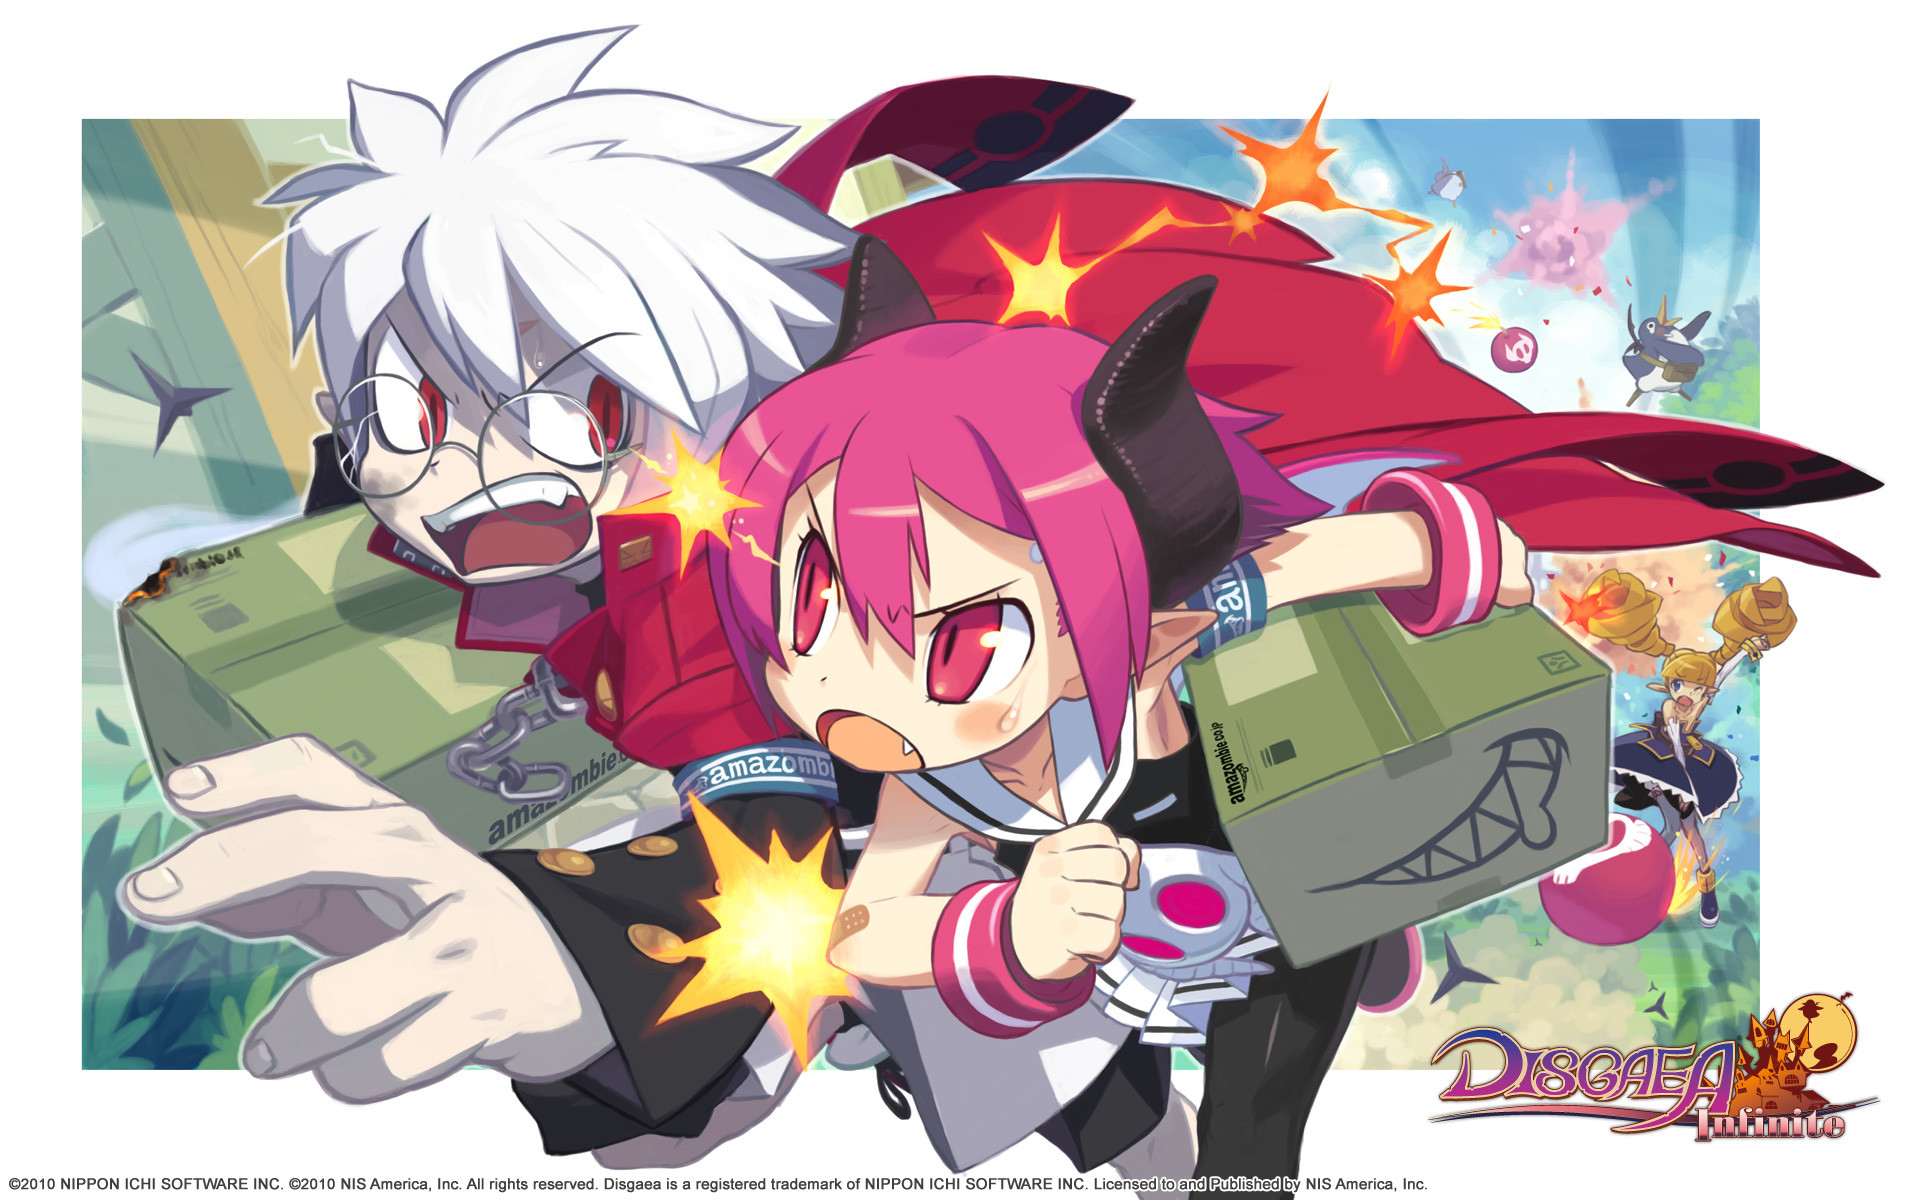 Res: 1920x1200, wallpaper #3 Wallpaper from Disgaea Infinite